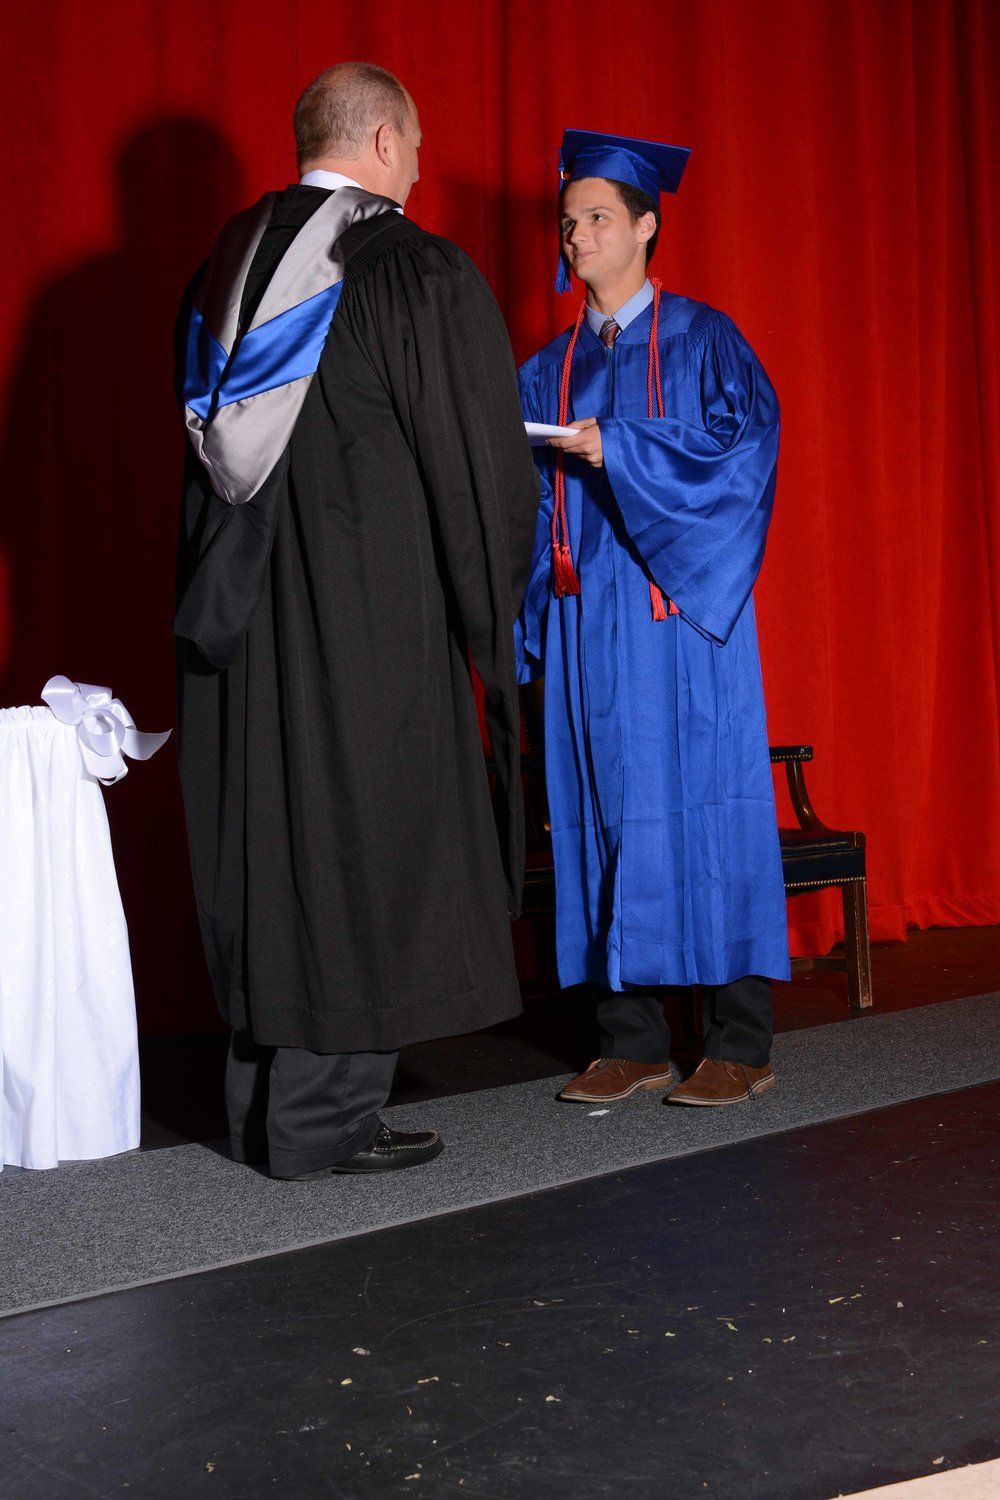 May15 HardingGraduation68.jpg